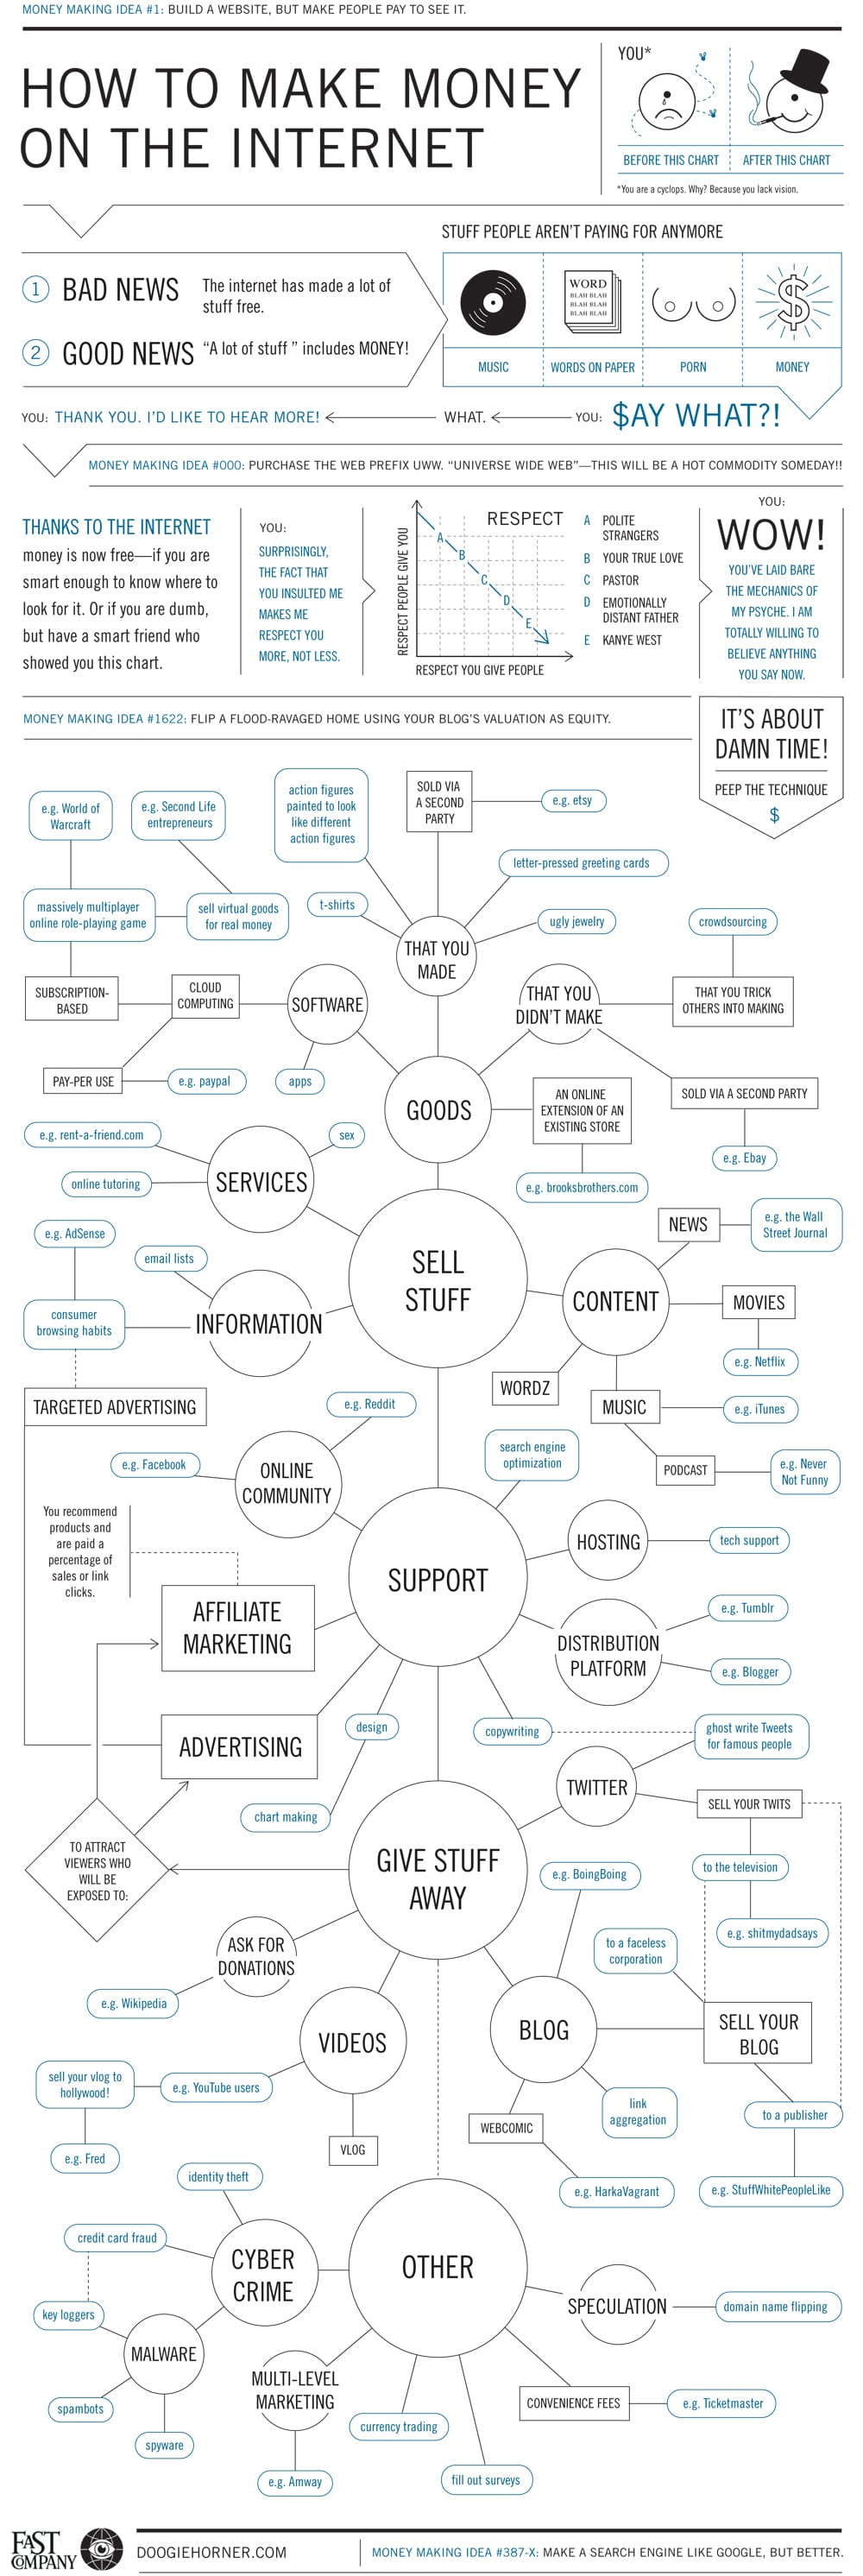 Reality Guide To Making Money Online [Flowchart]